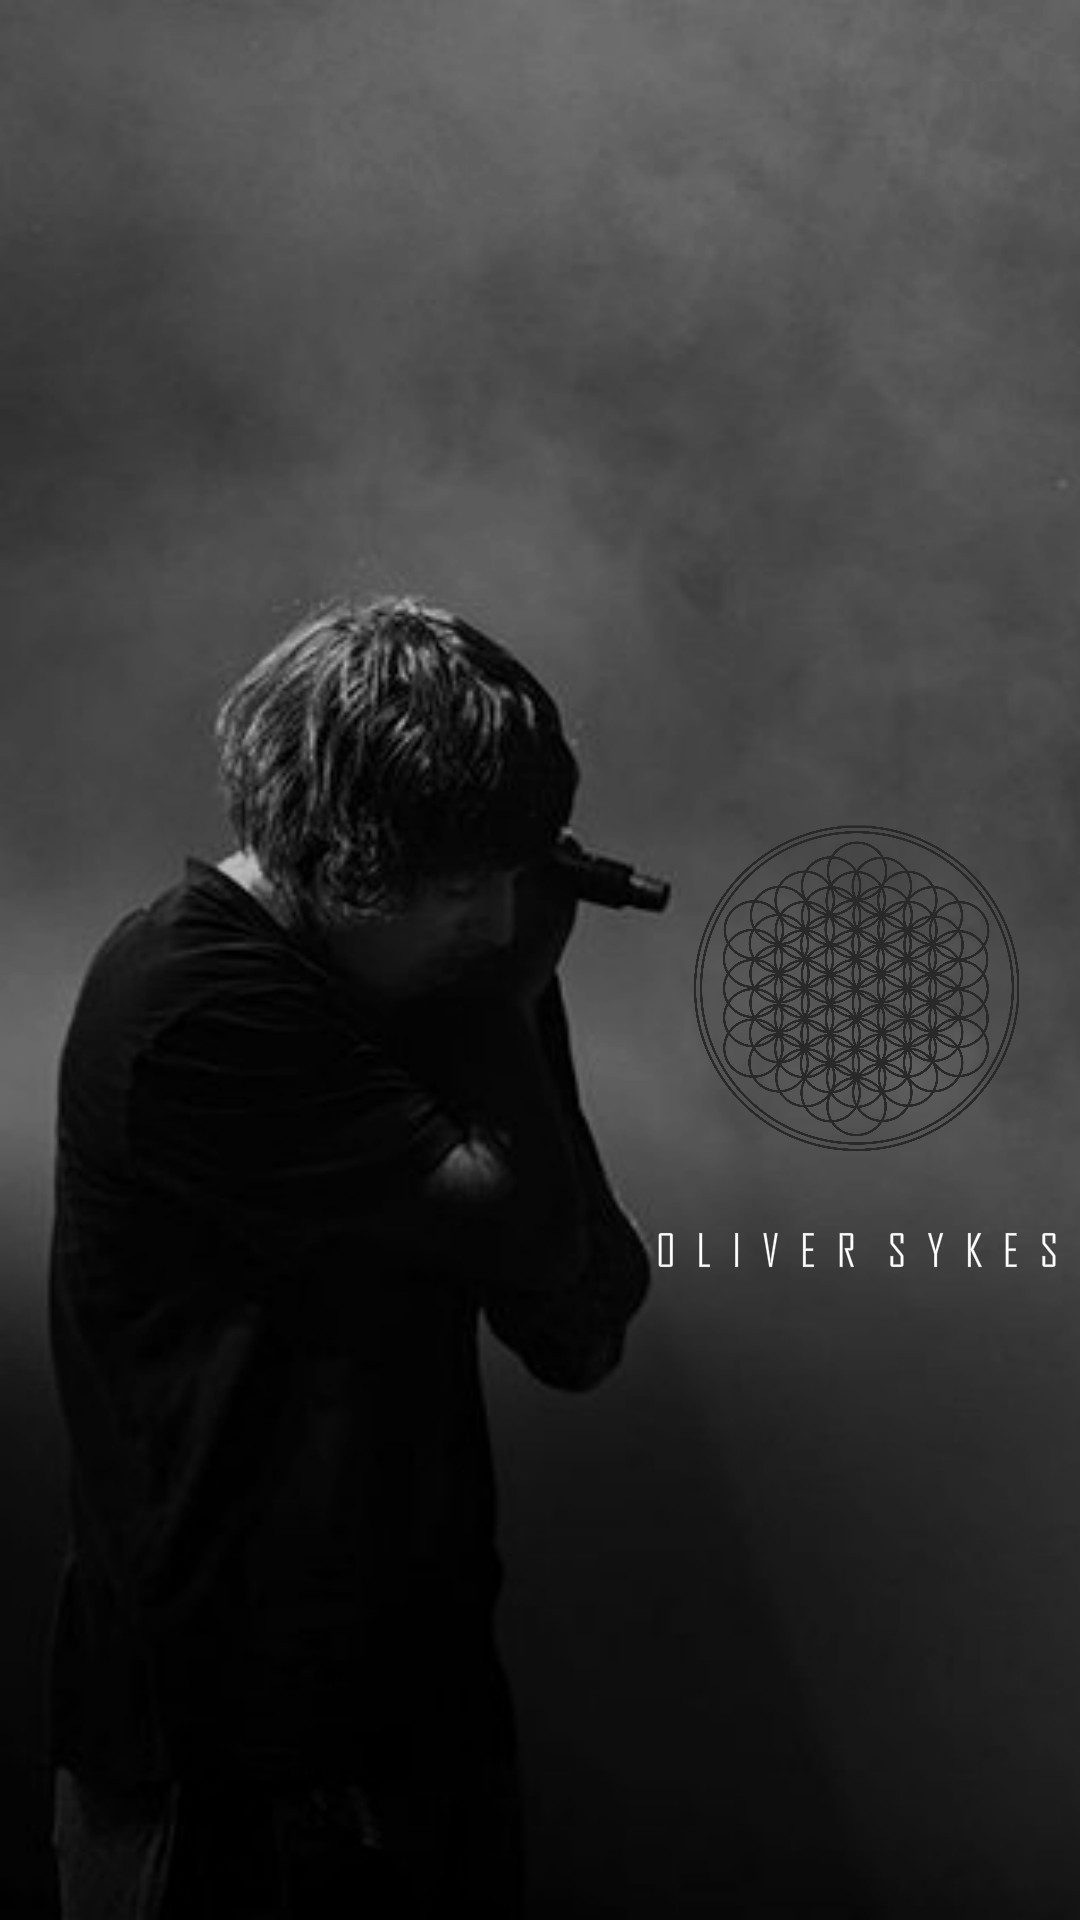 3840x2160 Bring Me The Horizon Quotes Inspirational Asap Rocky 61 Wallpapers Quotefancy